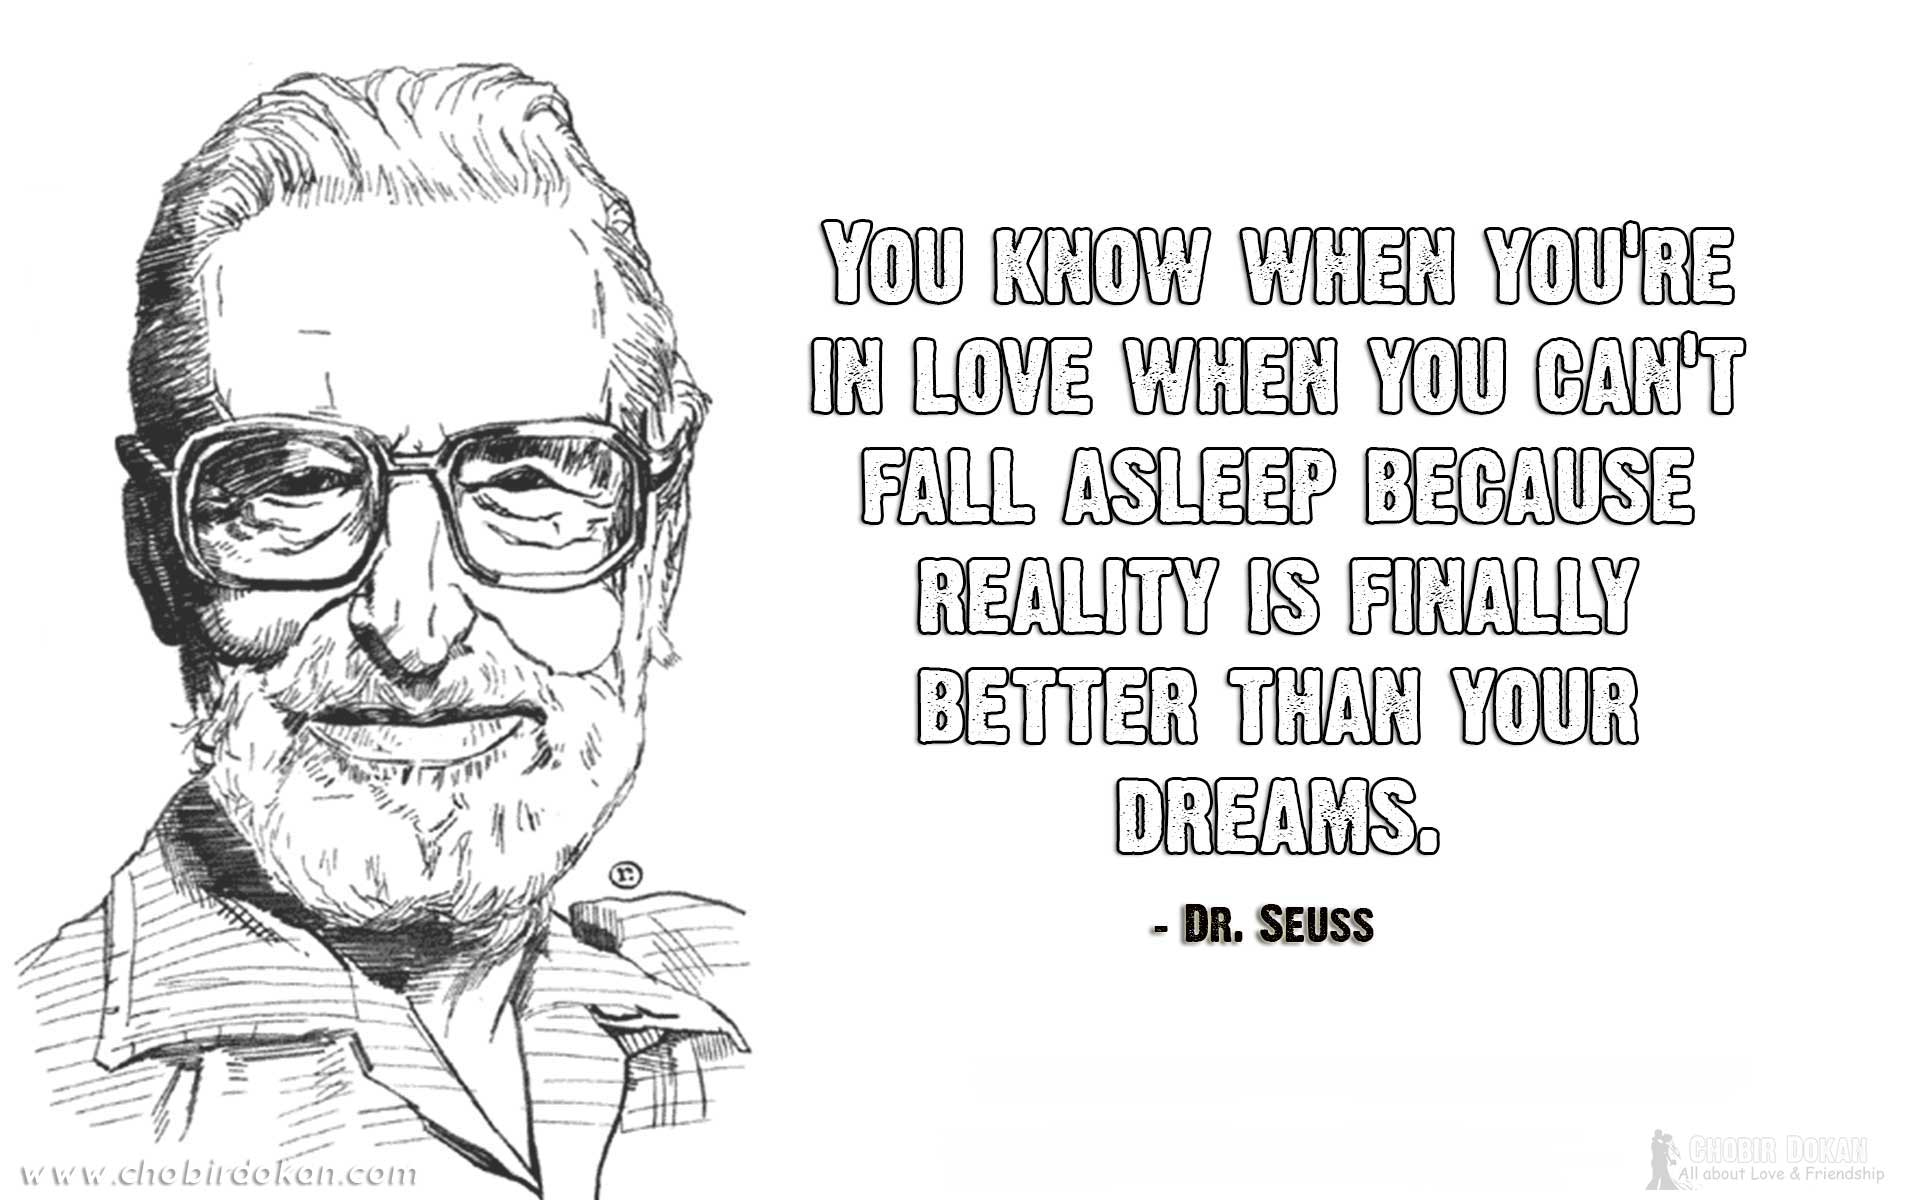 Love Knows No Color Quotes: Famous Love Quotes By Famous People -Love Picture Quotes